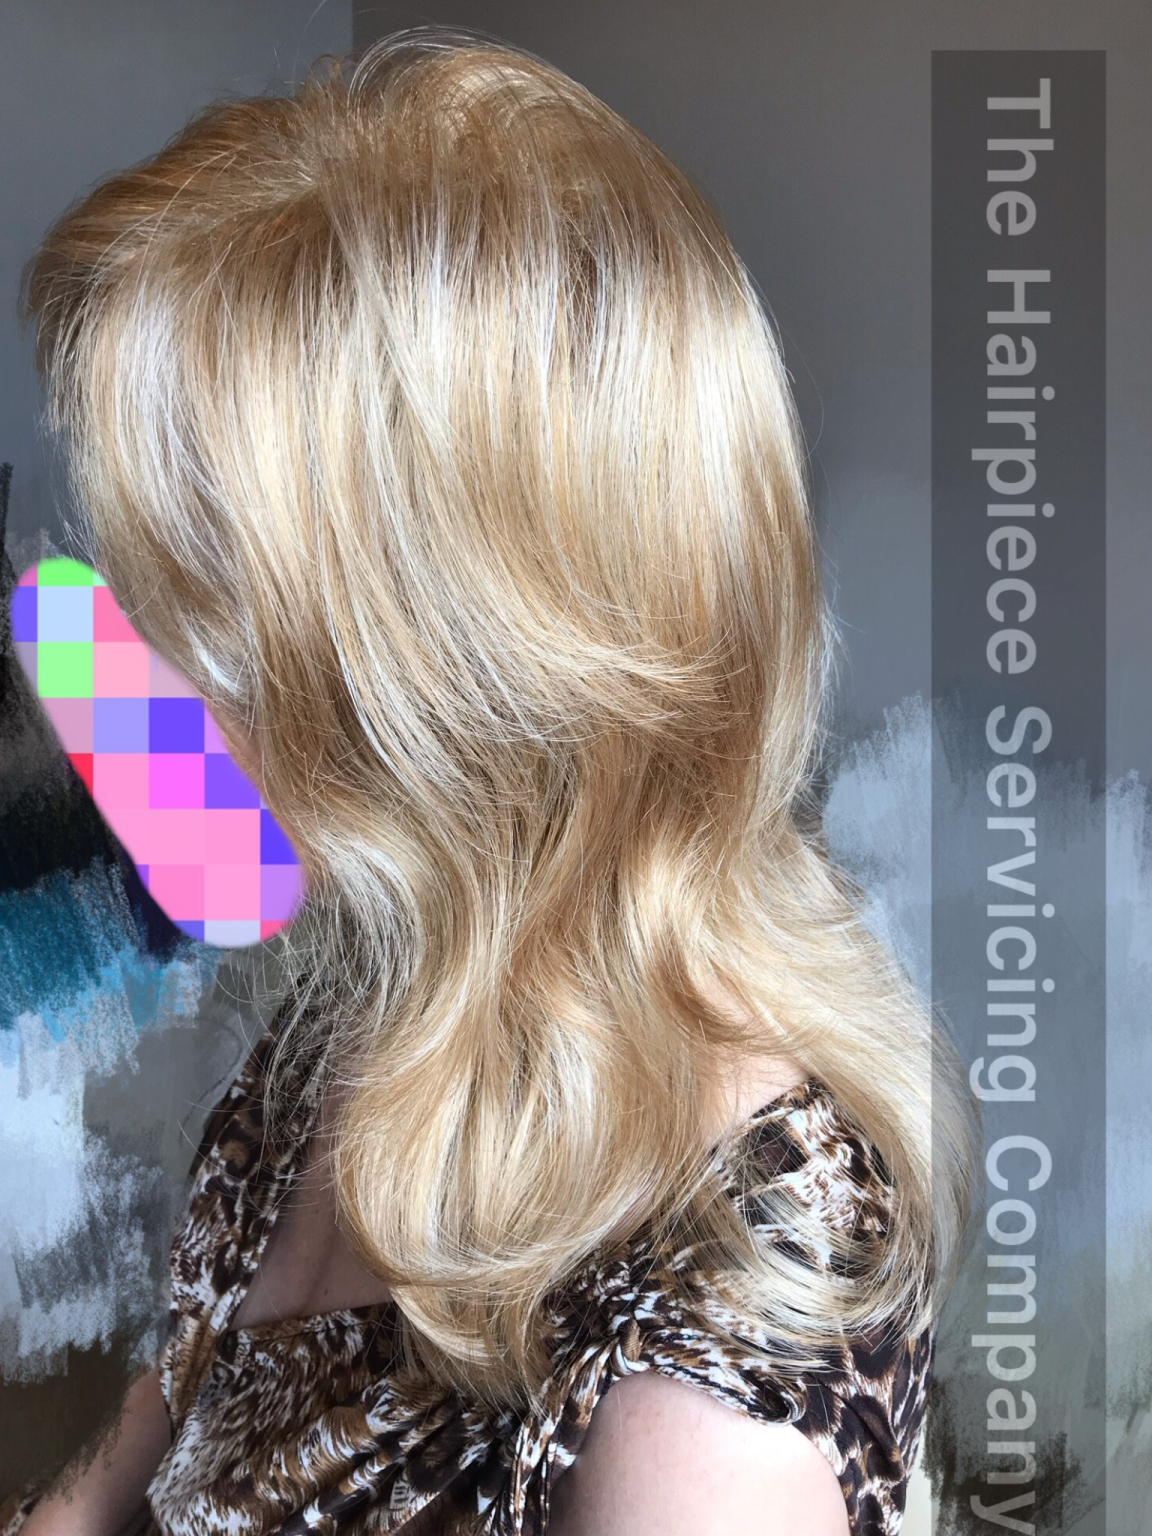 wigs toupees hairpieces